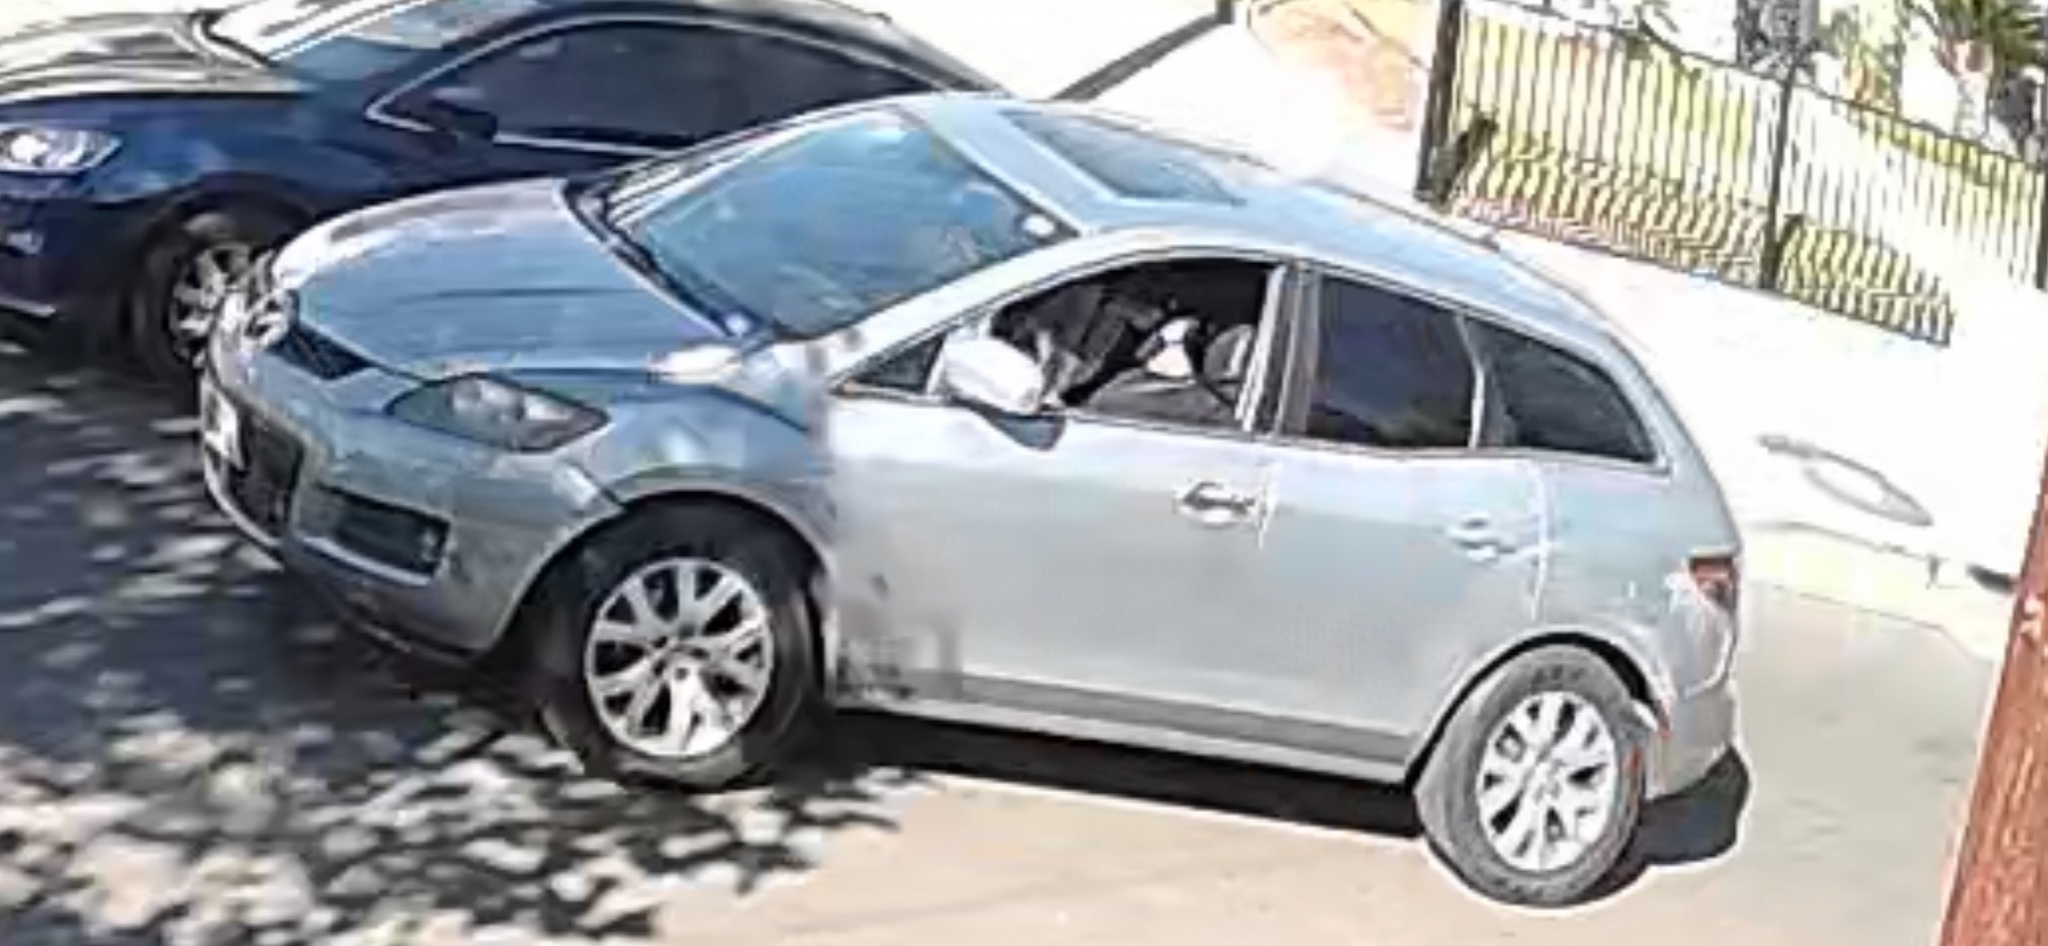 A vehicle believed to have been involved in a hit-and-run crash in Boyle Heights on Dec. 4, 2020. (LAPD)